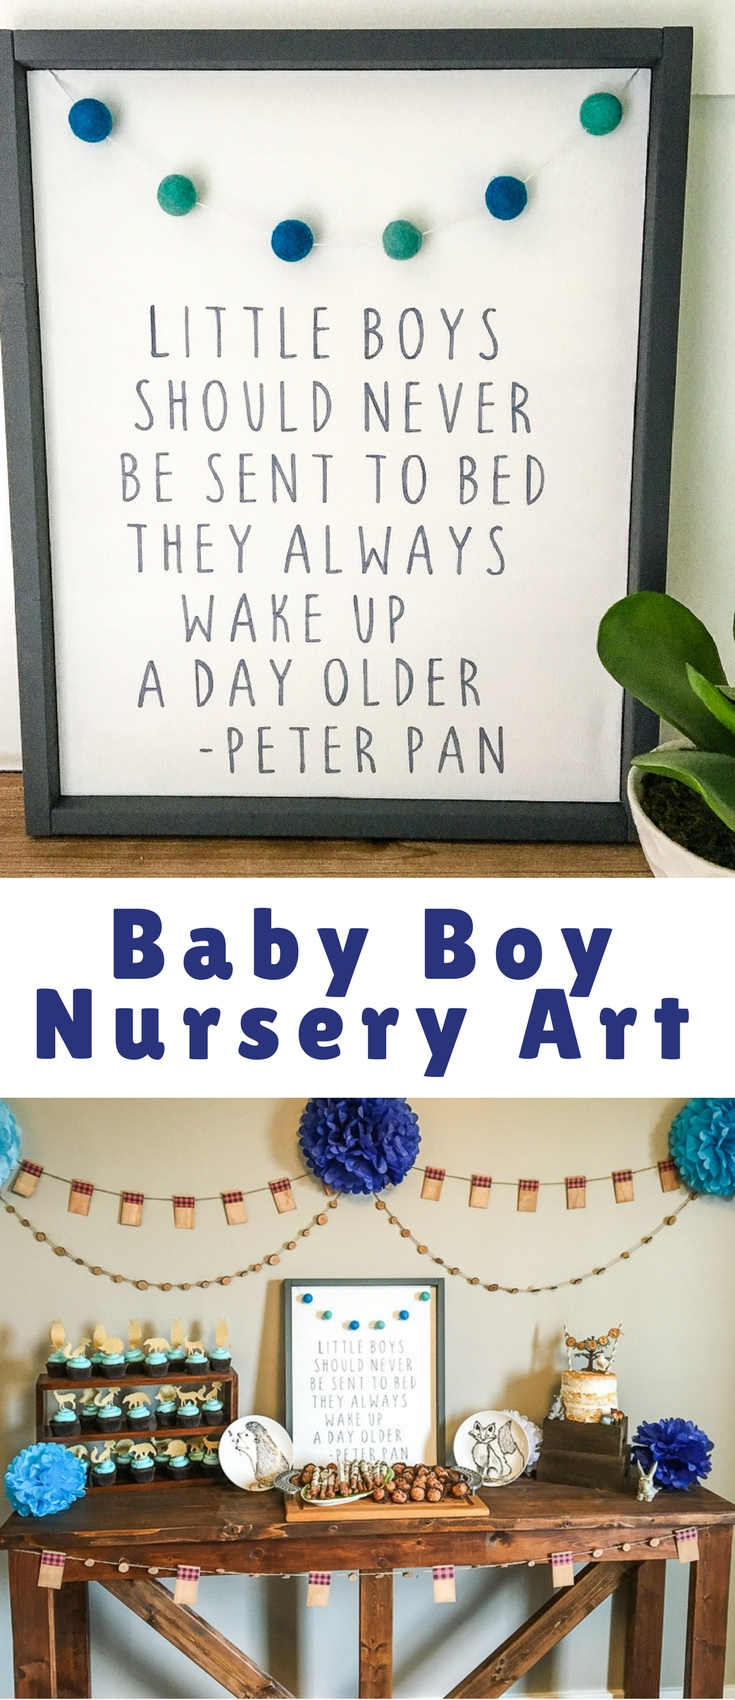 I'm pretty much a fan of anything that does double-duty and is simple to create, like this baby boy nursery art! I used it as the centerpiece of the dessert table as decoration and then it also doubled as a gift for my nephew's new nursery.